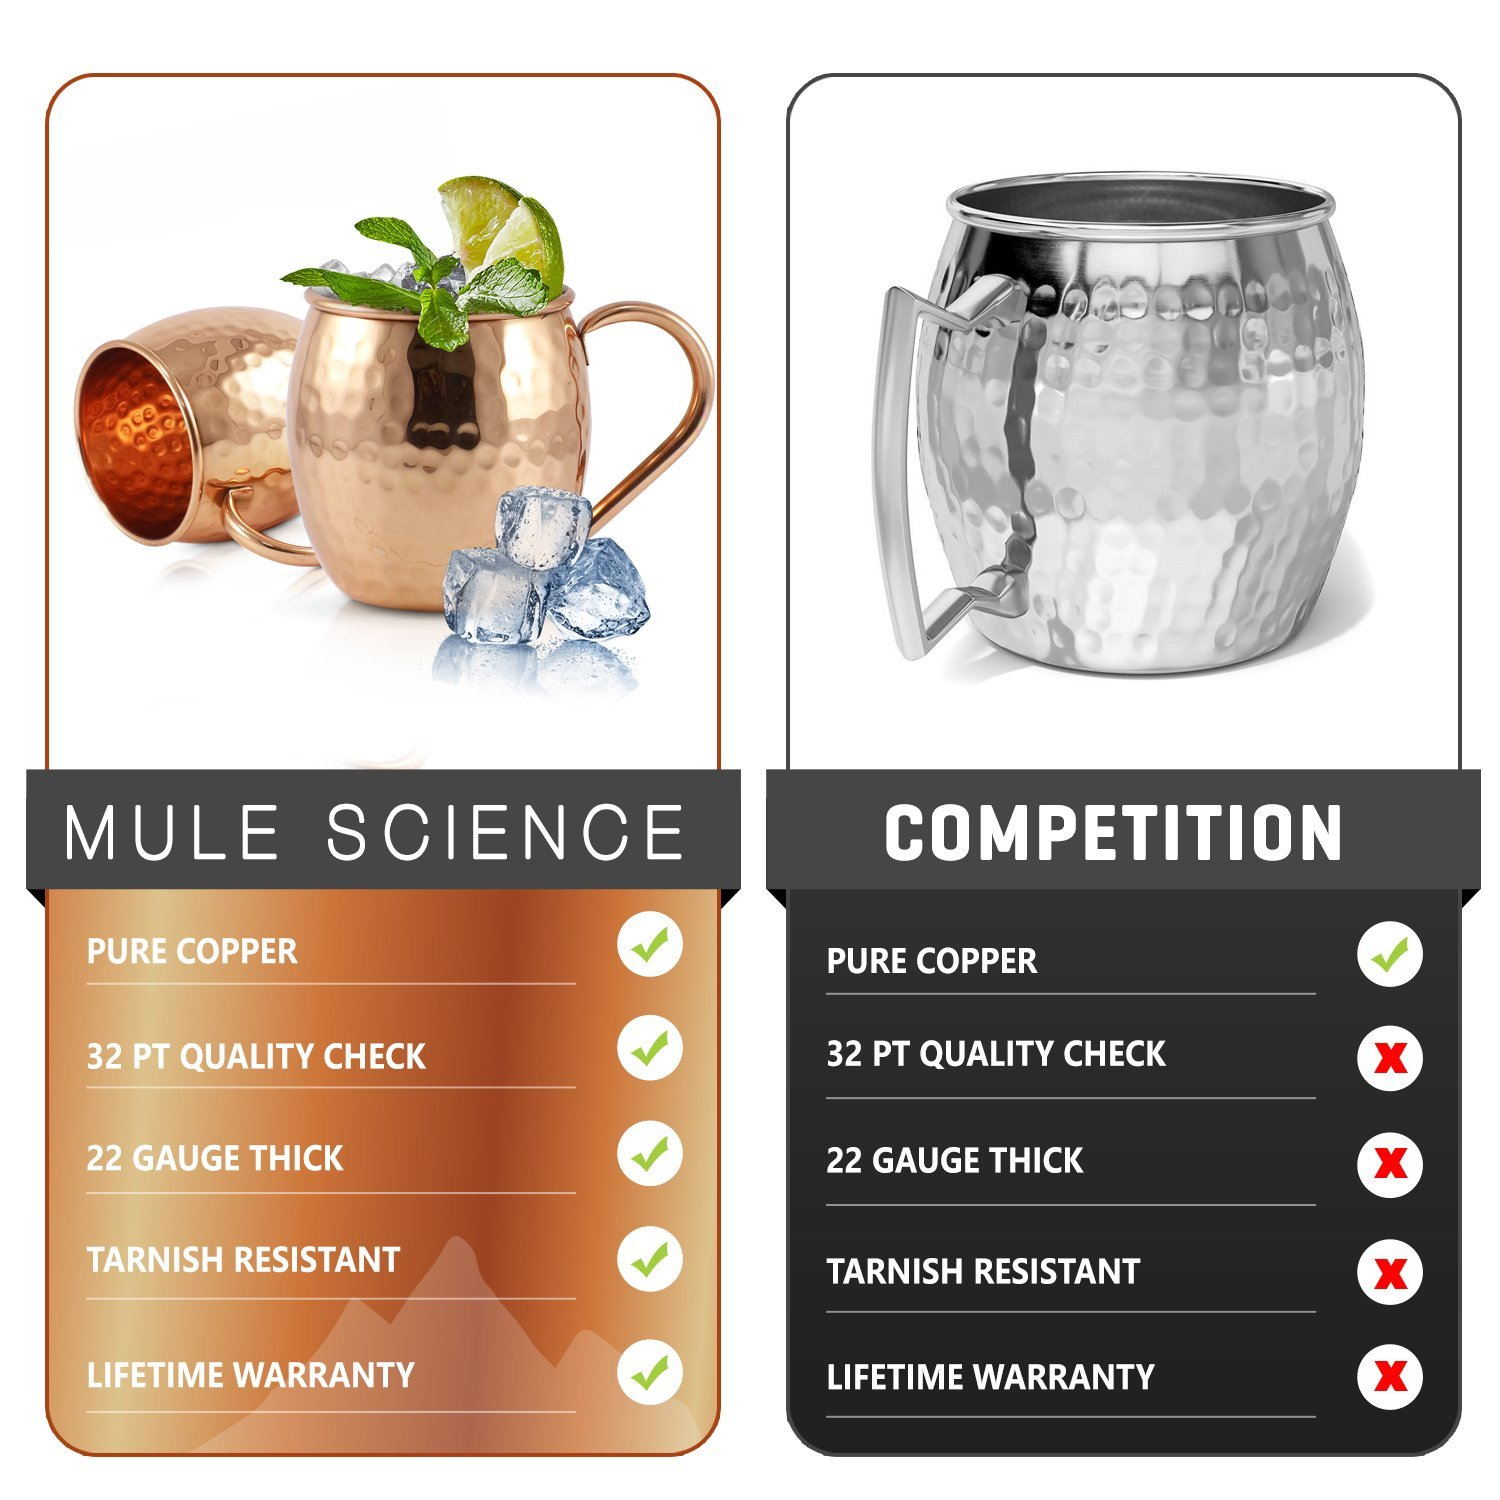 Mule Science Moscow Mule Copper Mugs - Set of 4 - 100% HANDCRAFTED - Pure Solid Copper Mugs 16 oz Gift Set with BONUS: Highest Quality Cocktail Copper Straws, Coasters and Shot Glass! by Advanced Mixology (Image #5)